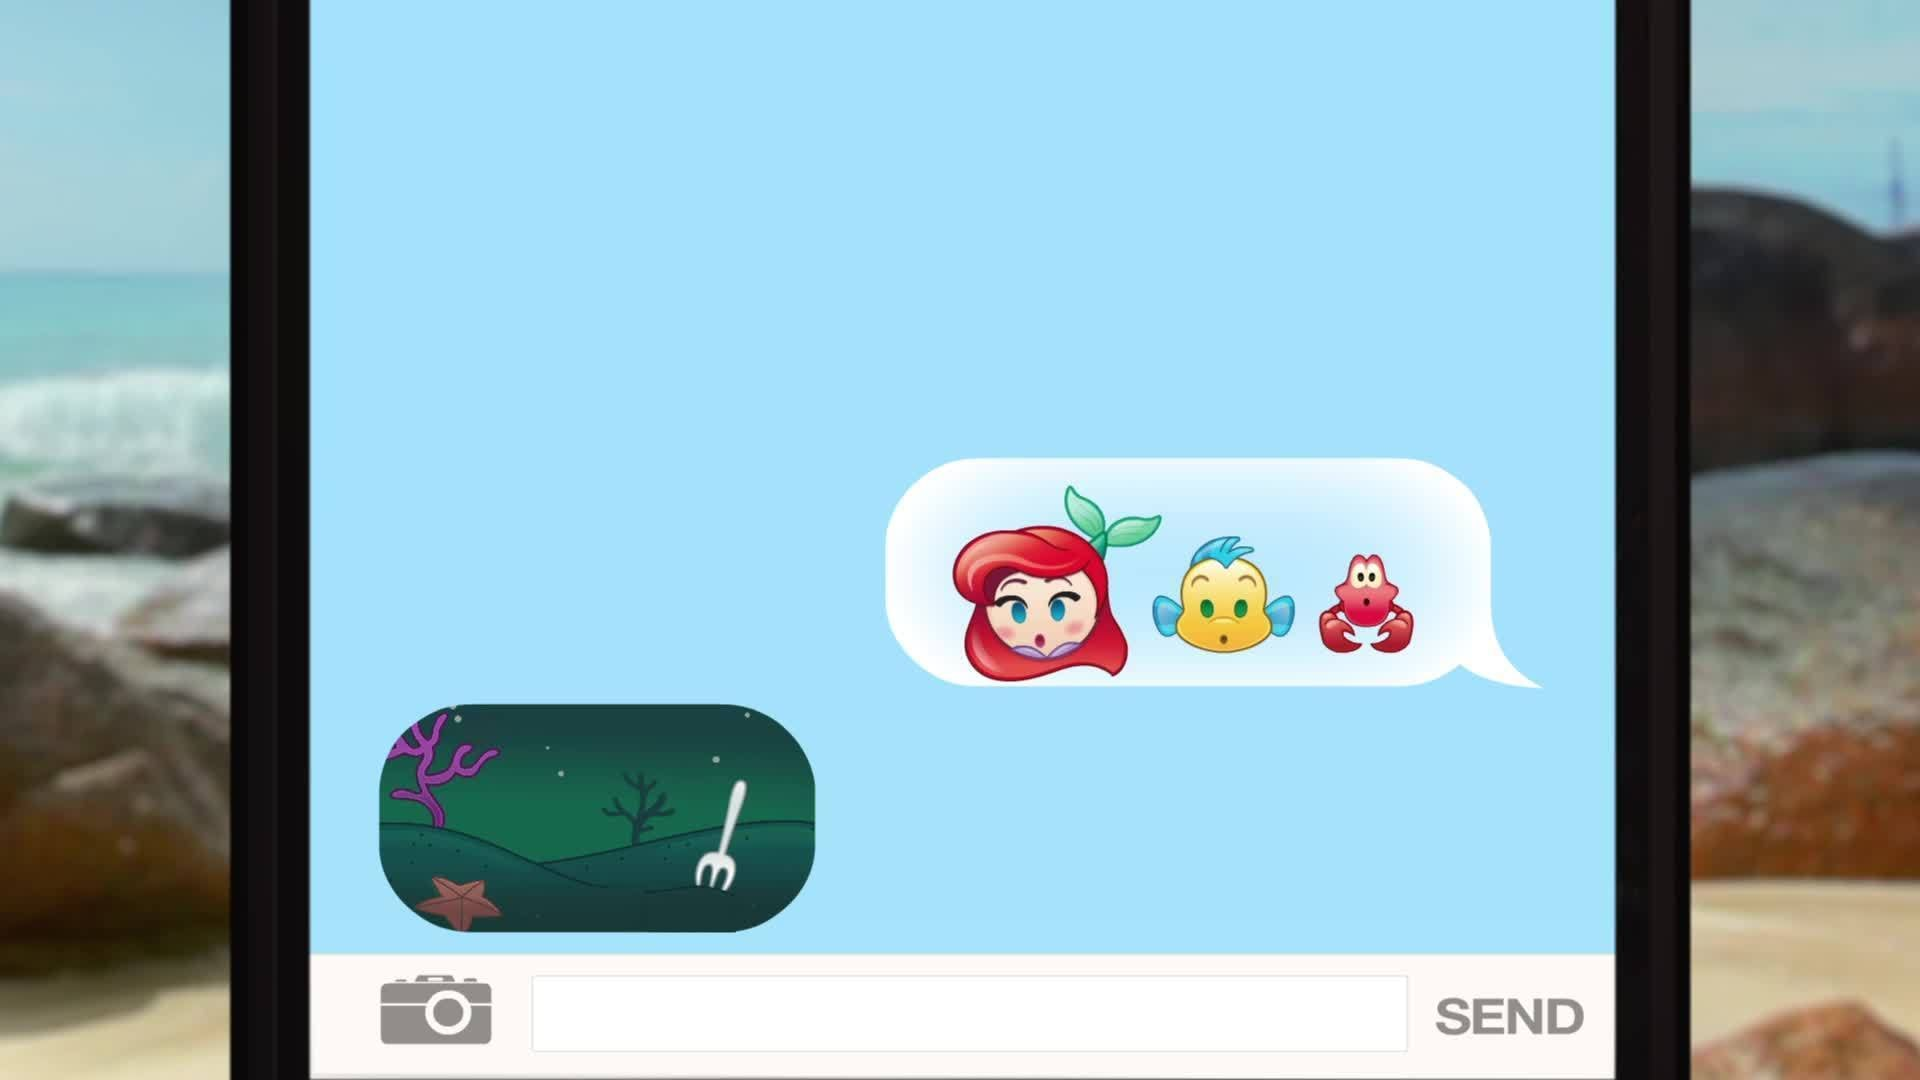 The Little Mermaid As Told By Emoji